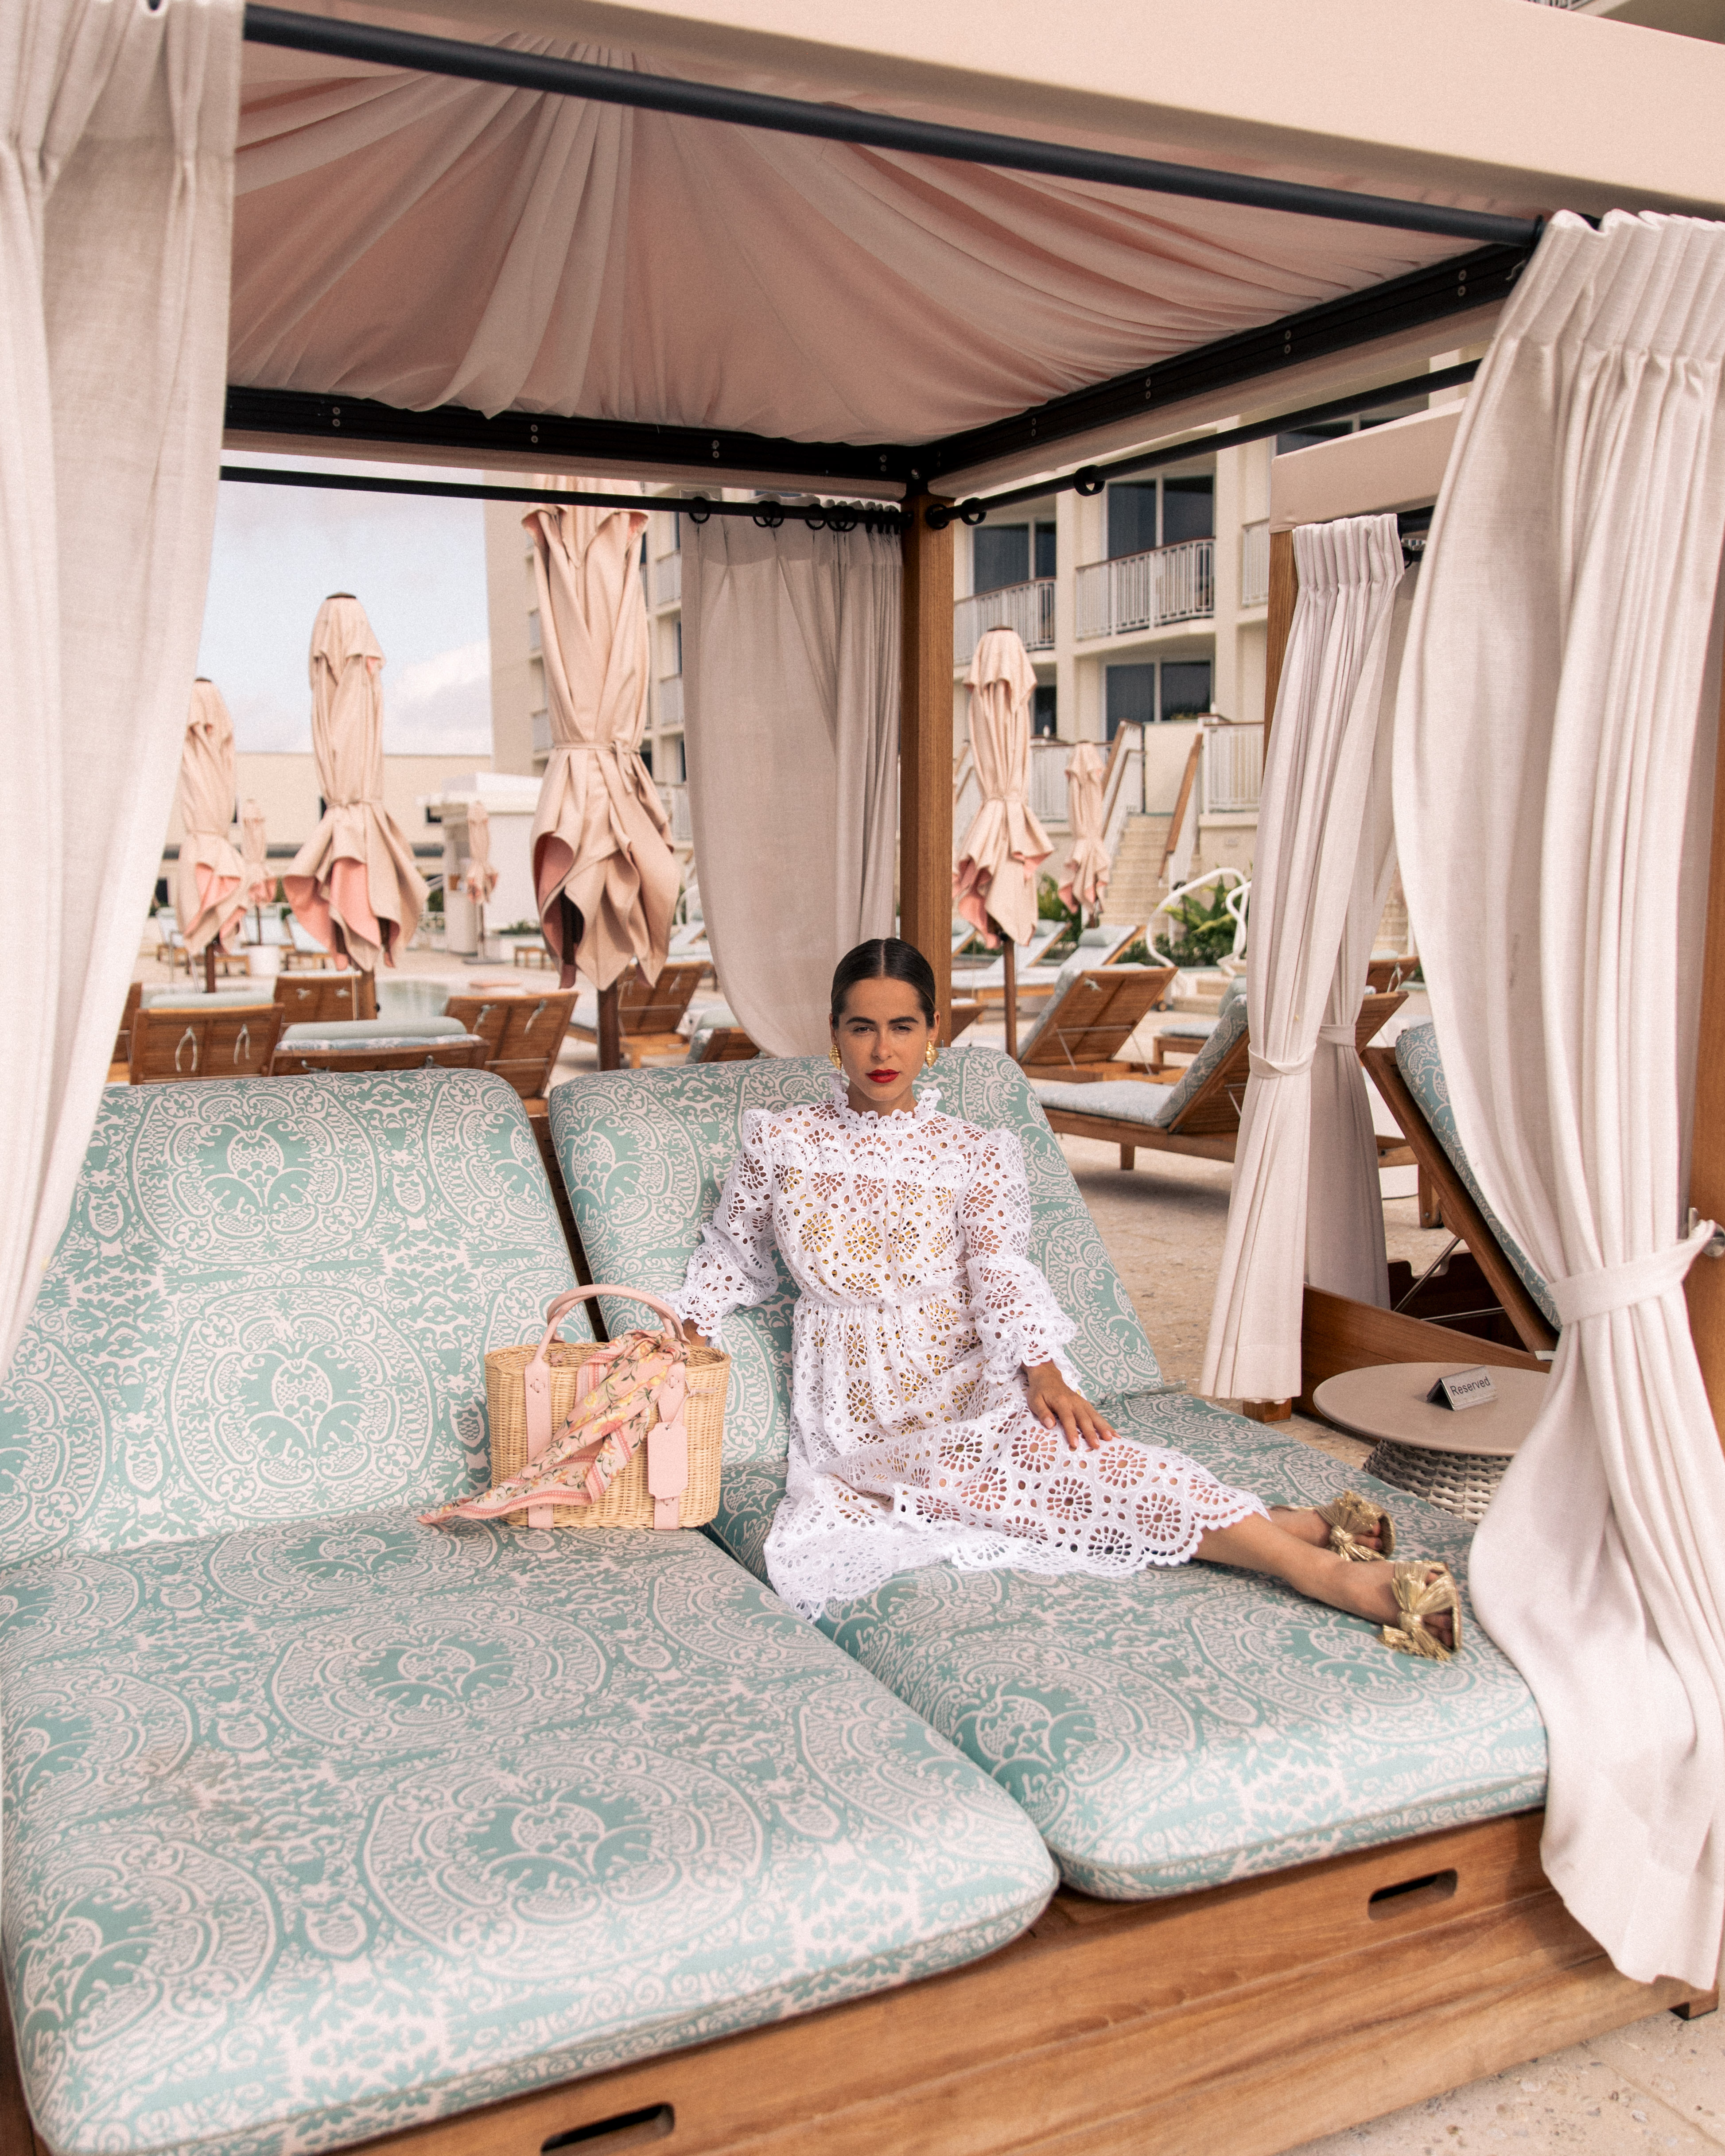 Style Blogger Stephanie Hill's Mini Staycation on The Style Bungalow